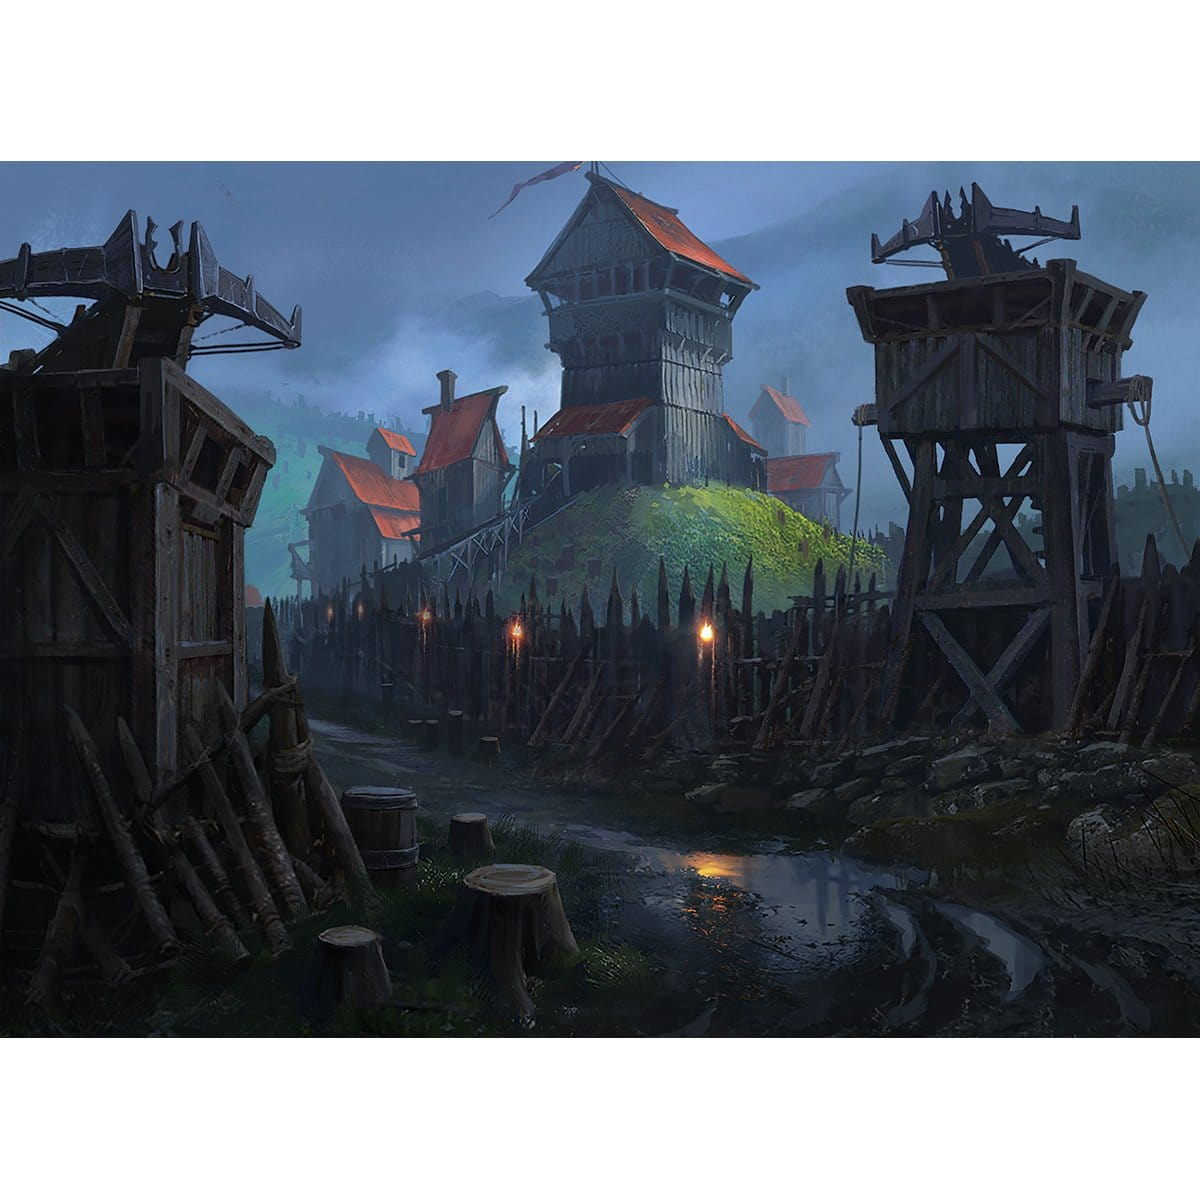 Fortified Village Print